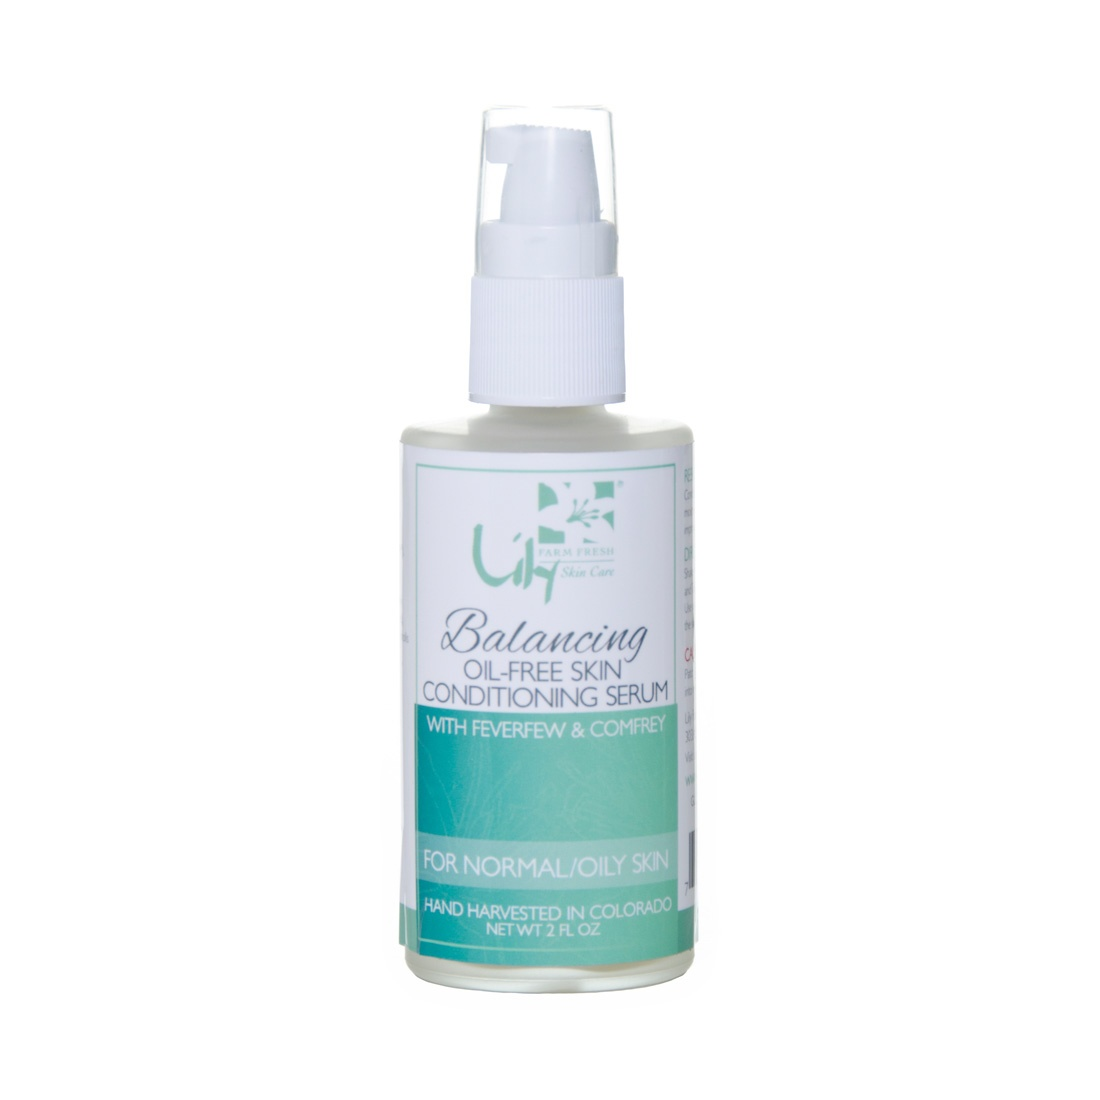 Balancing Oil-Free Skin Conditioning Serum